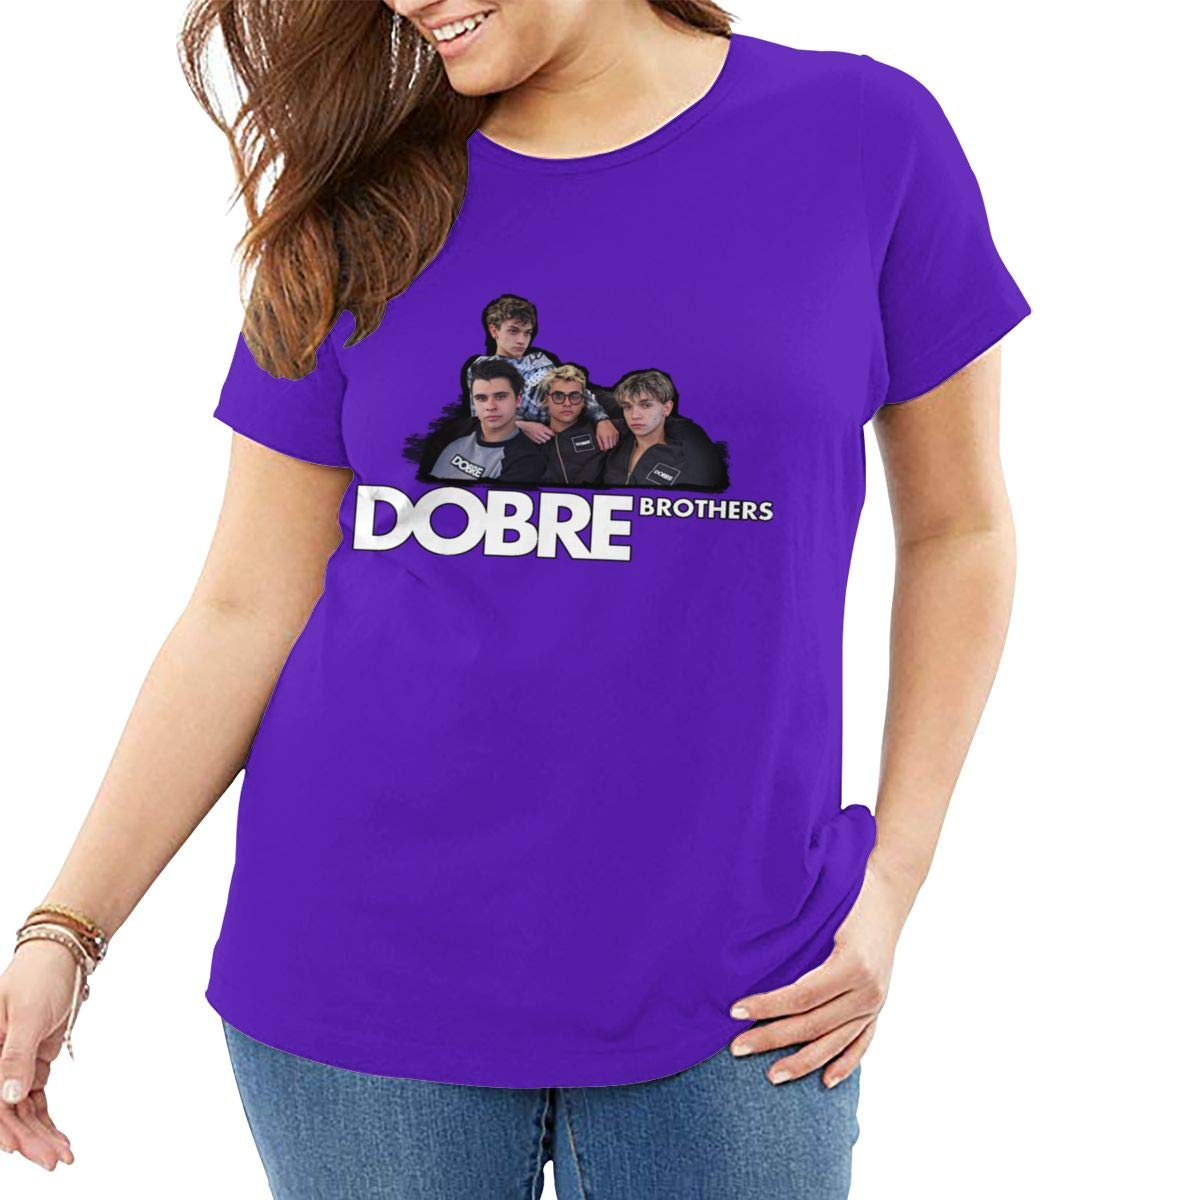 Fat Women's T Shirt Dobre Brothers Tee Shirts T-Shirt Short-Sleeve Round Neck Tshirt for Women Youth Girls Plus Size Purple 3XL by BKashy